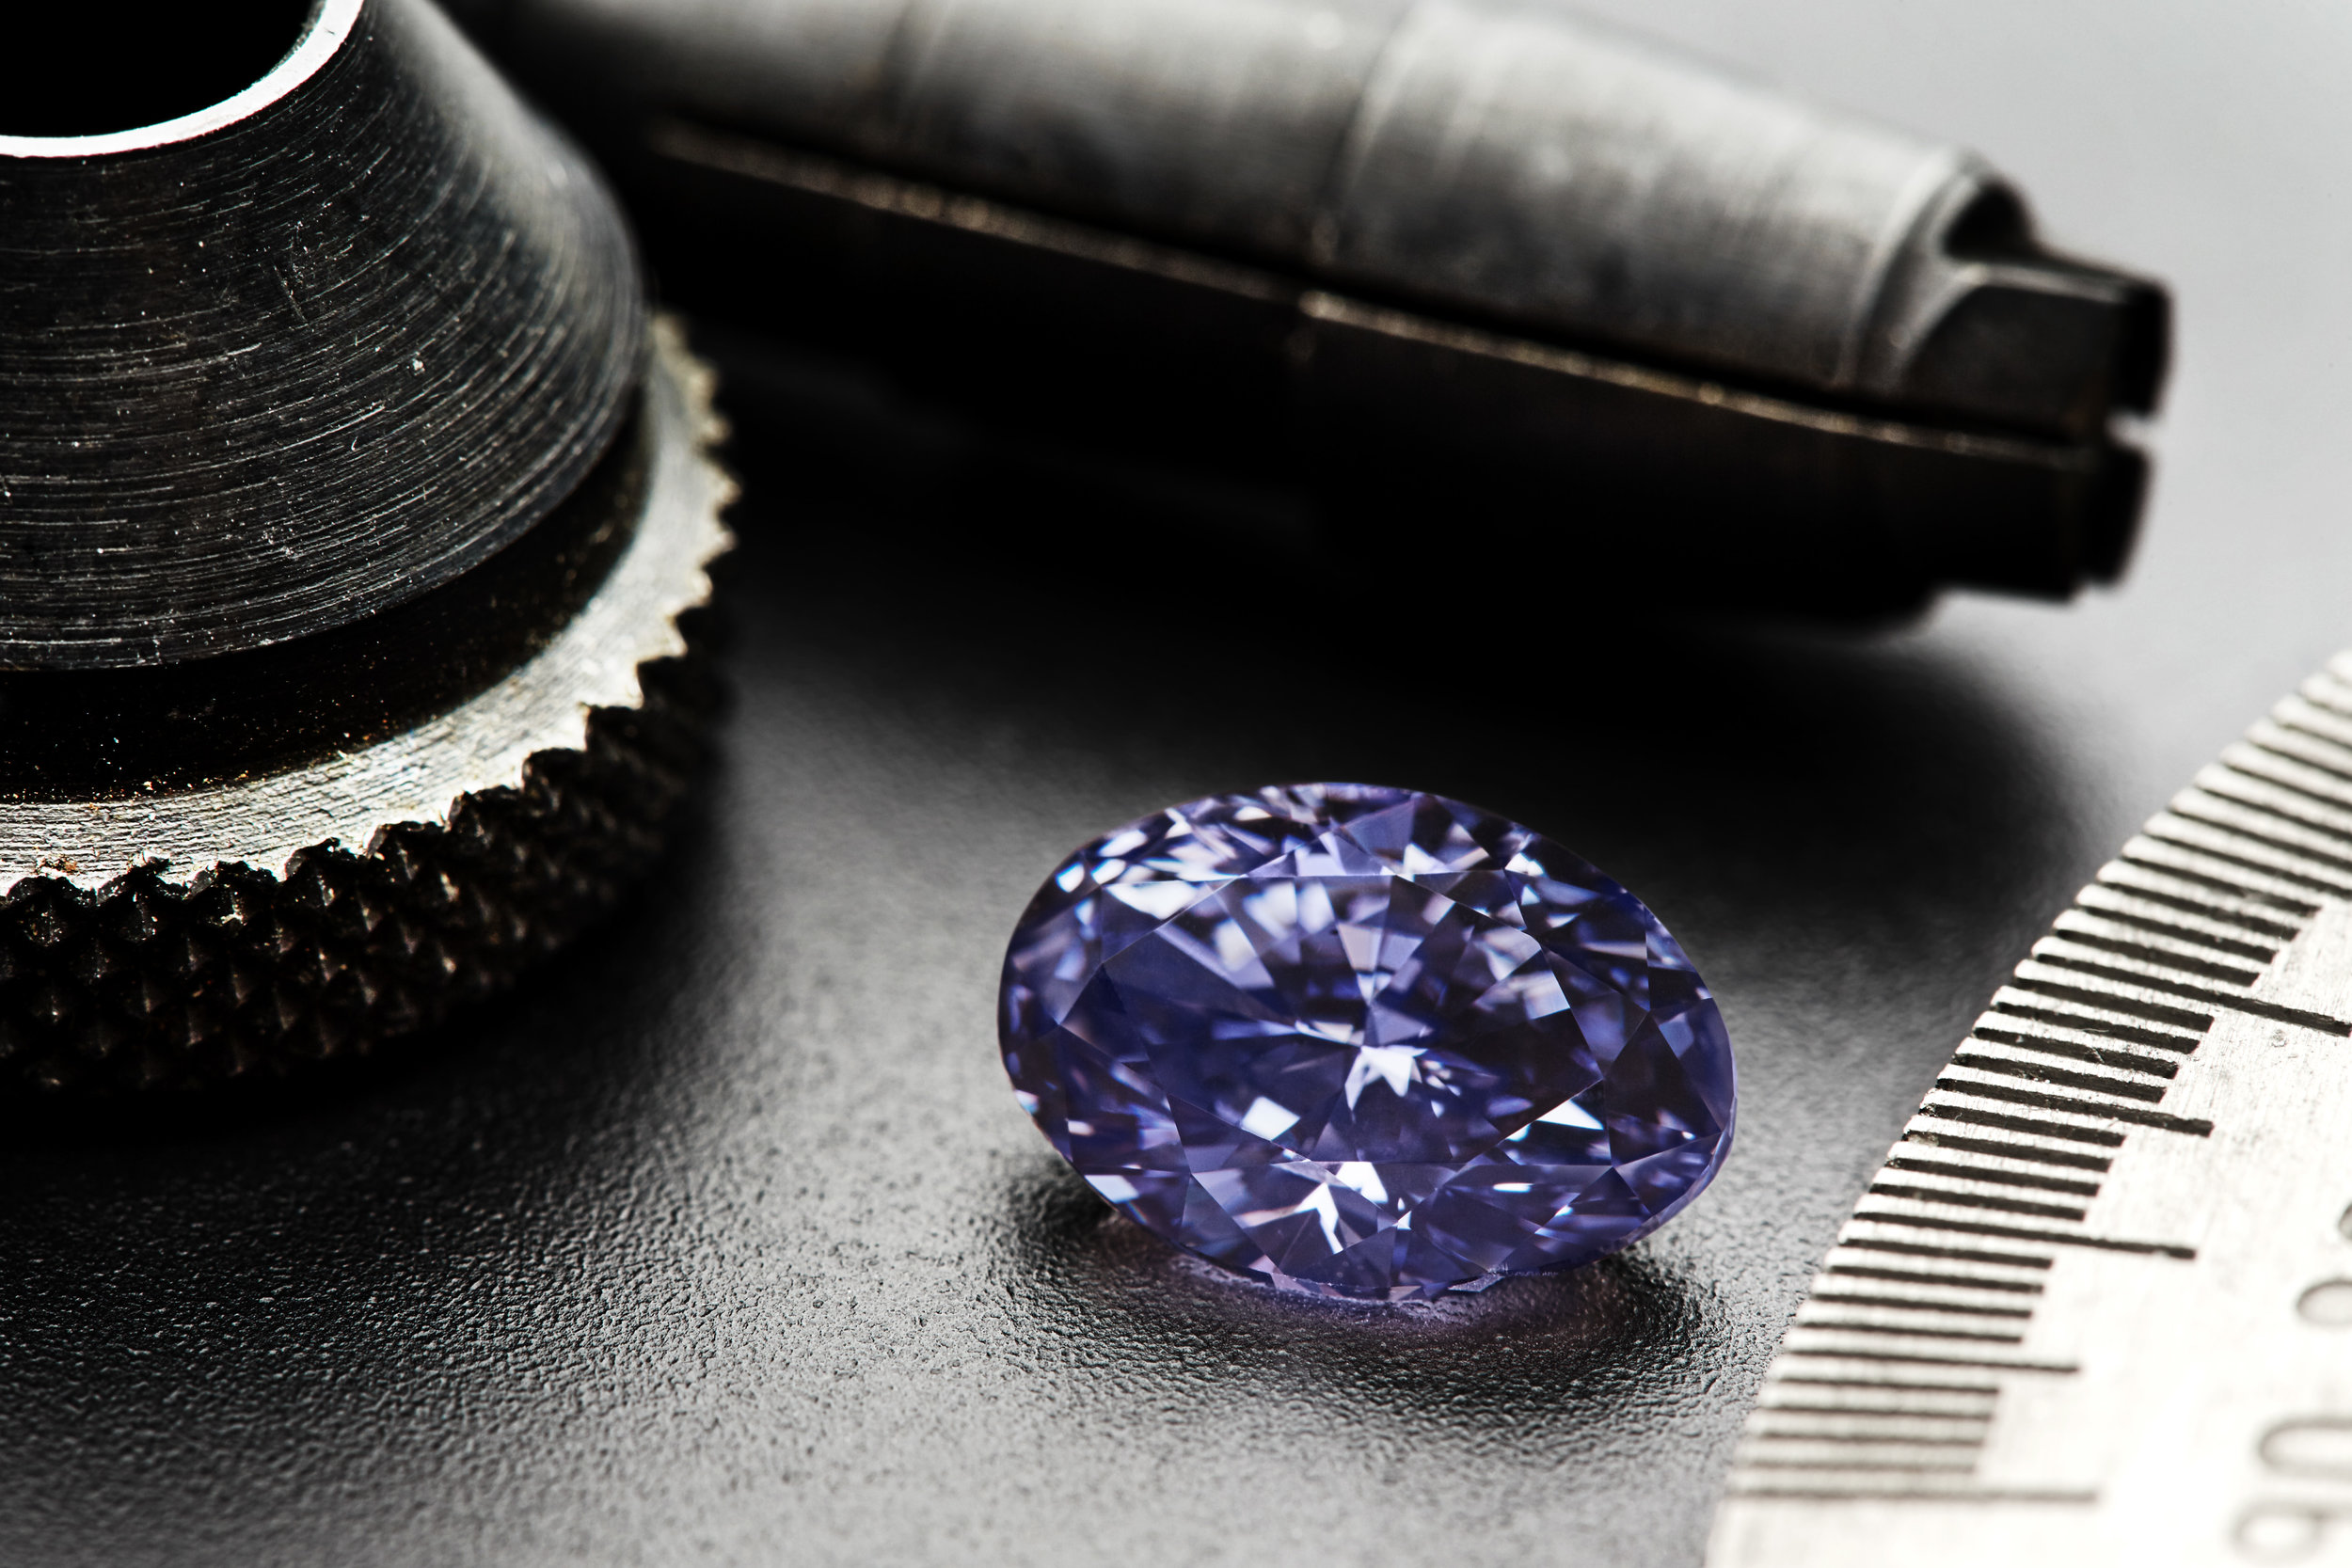 2.83-carat Argyle Violet, the largest and most valuable violet diamond recovered to date from the Argyle mine.